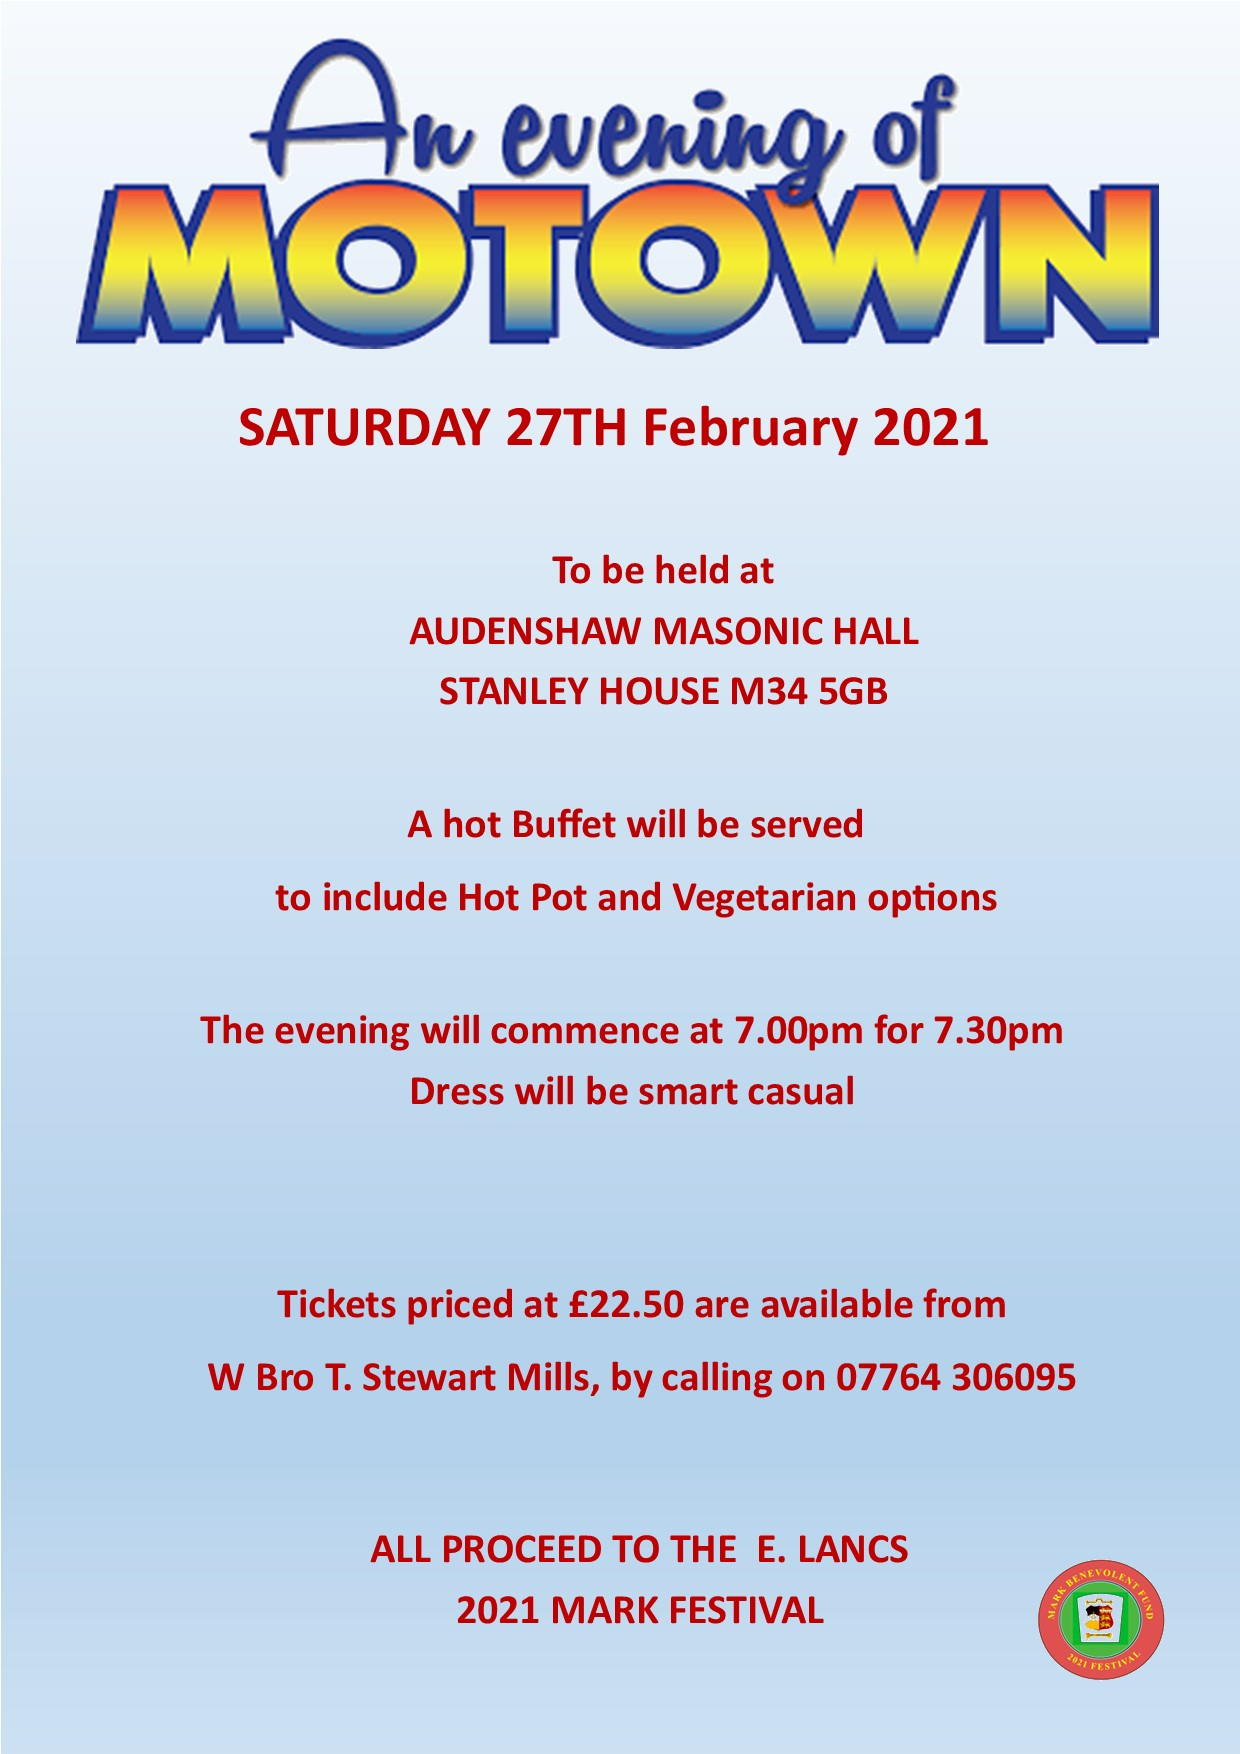 An Evening of Motown @ Audenshaw Masonic Hall